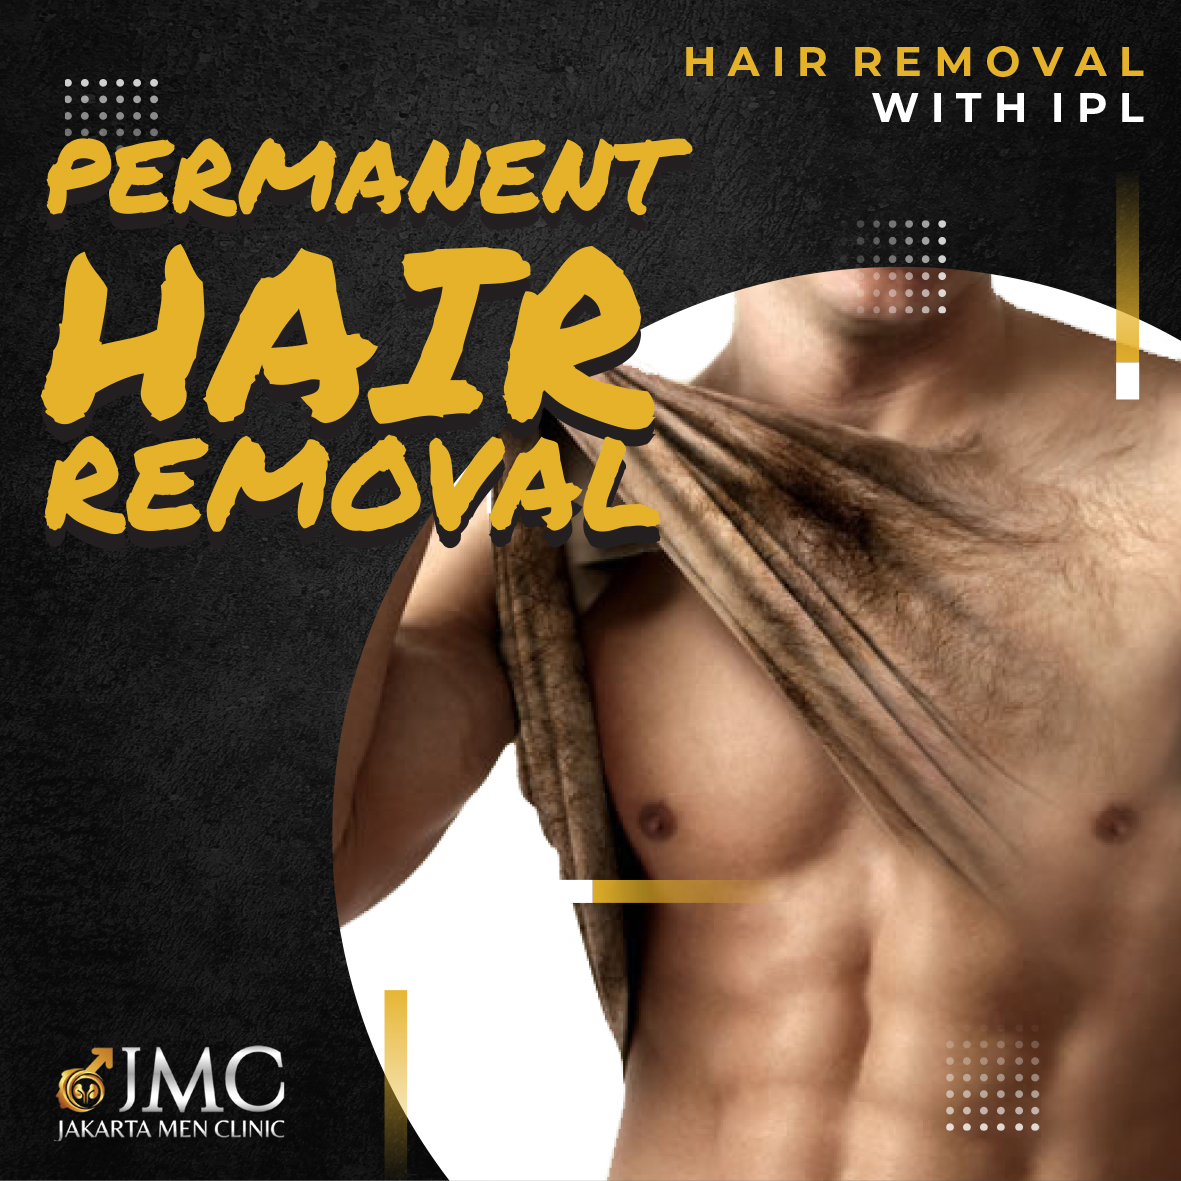 HAIR REMOVAL WITH IPL